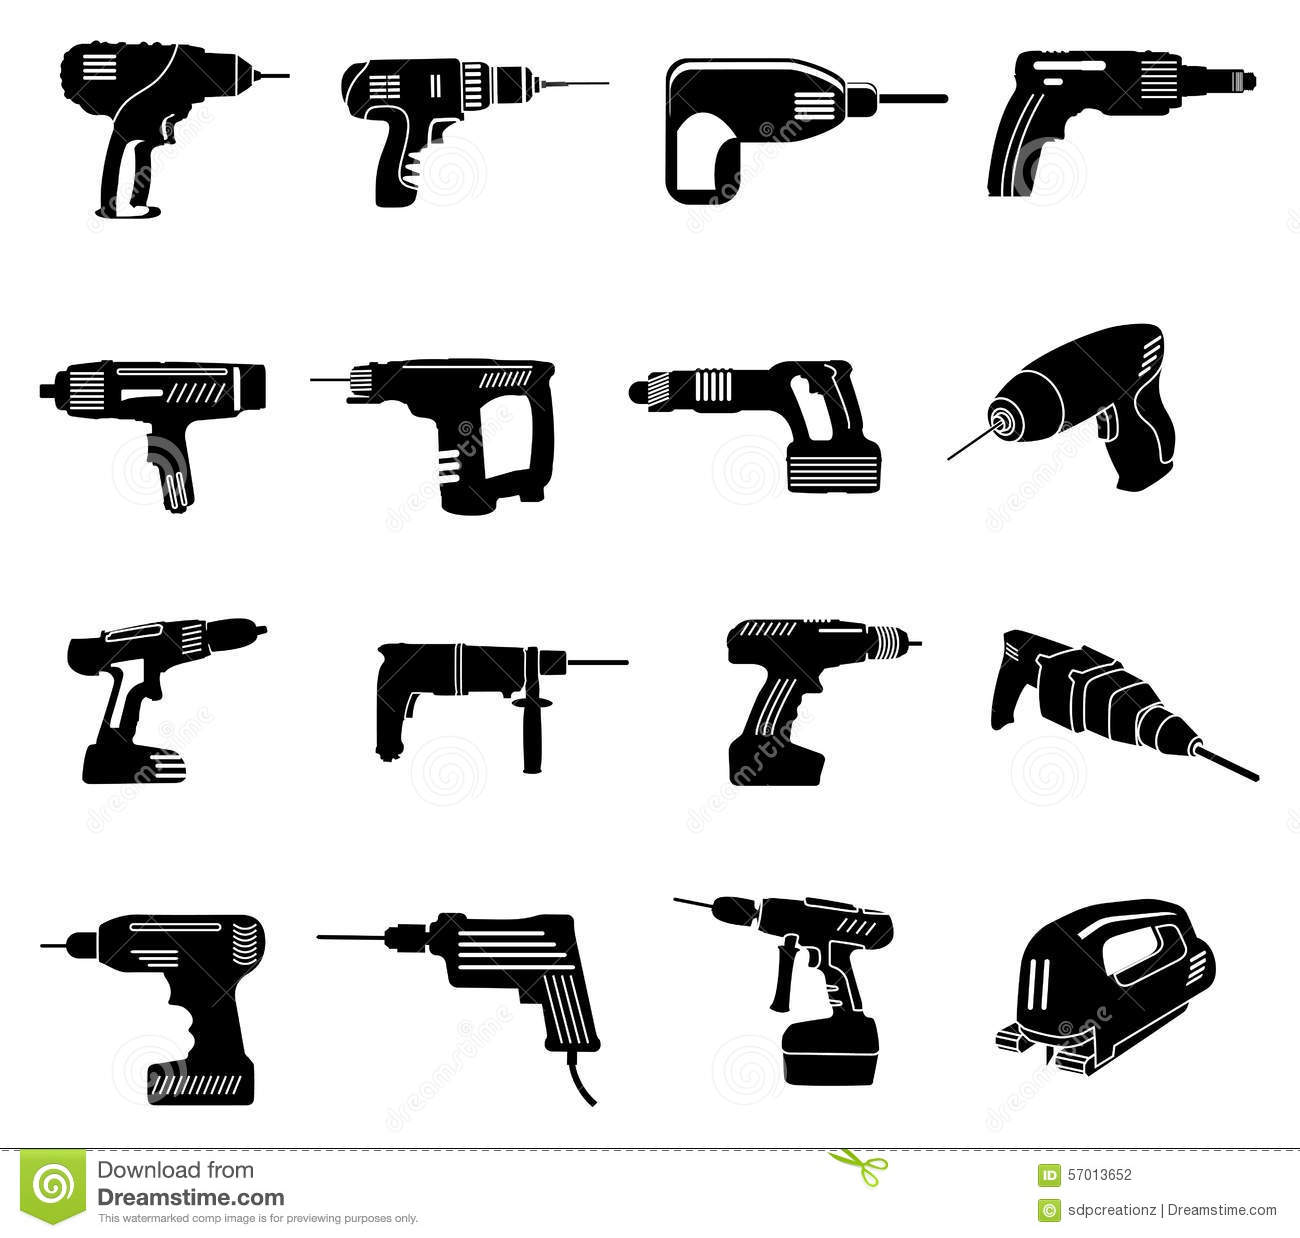 power tools icon. royalty-free vector. download power tools icons icon ,